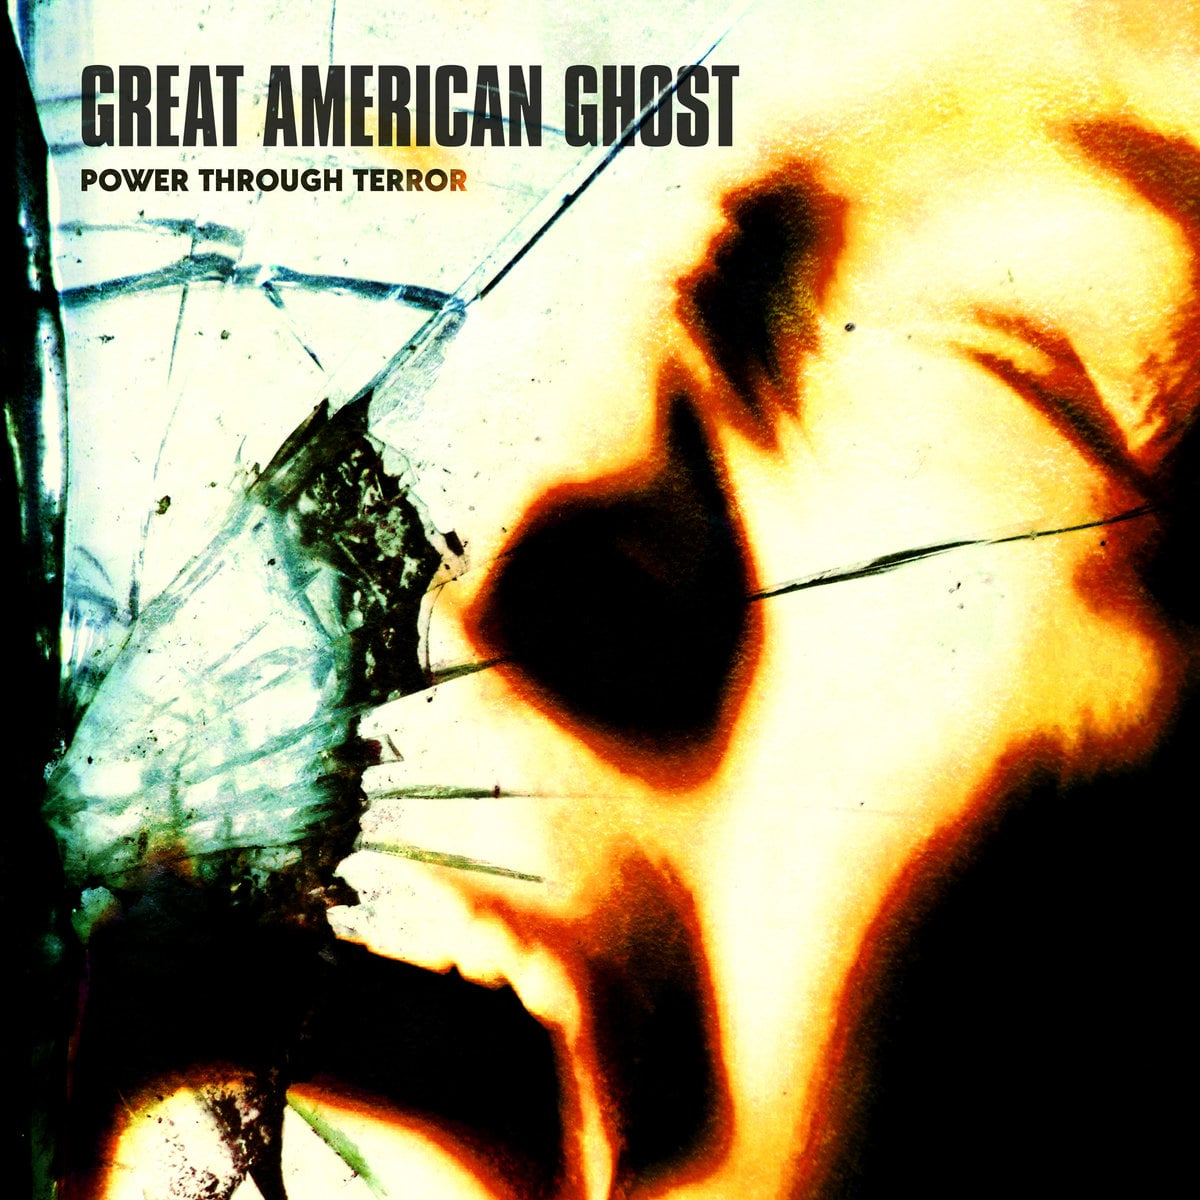 Power Through Terror by GREAT AMERICAN GHOST!